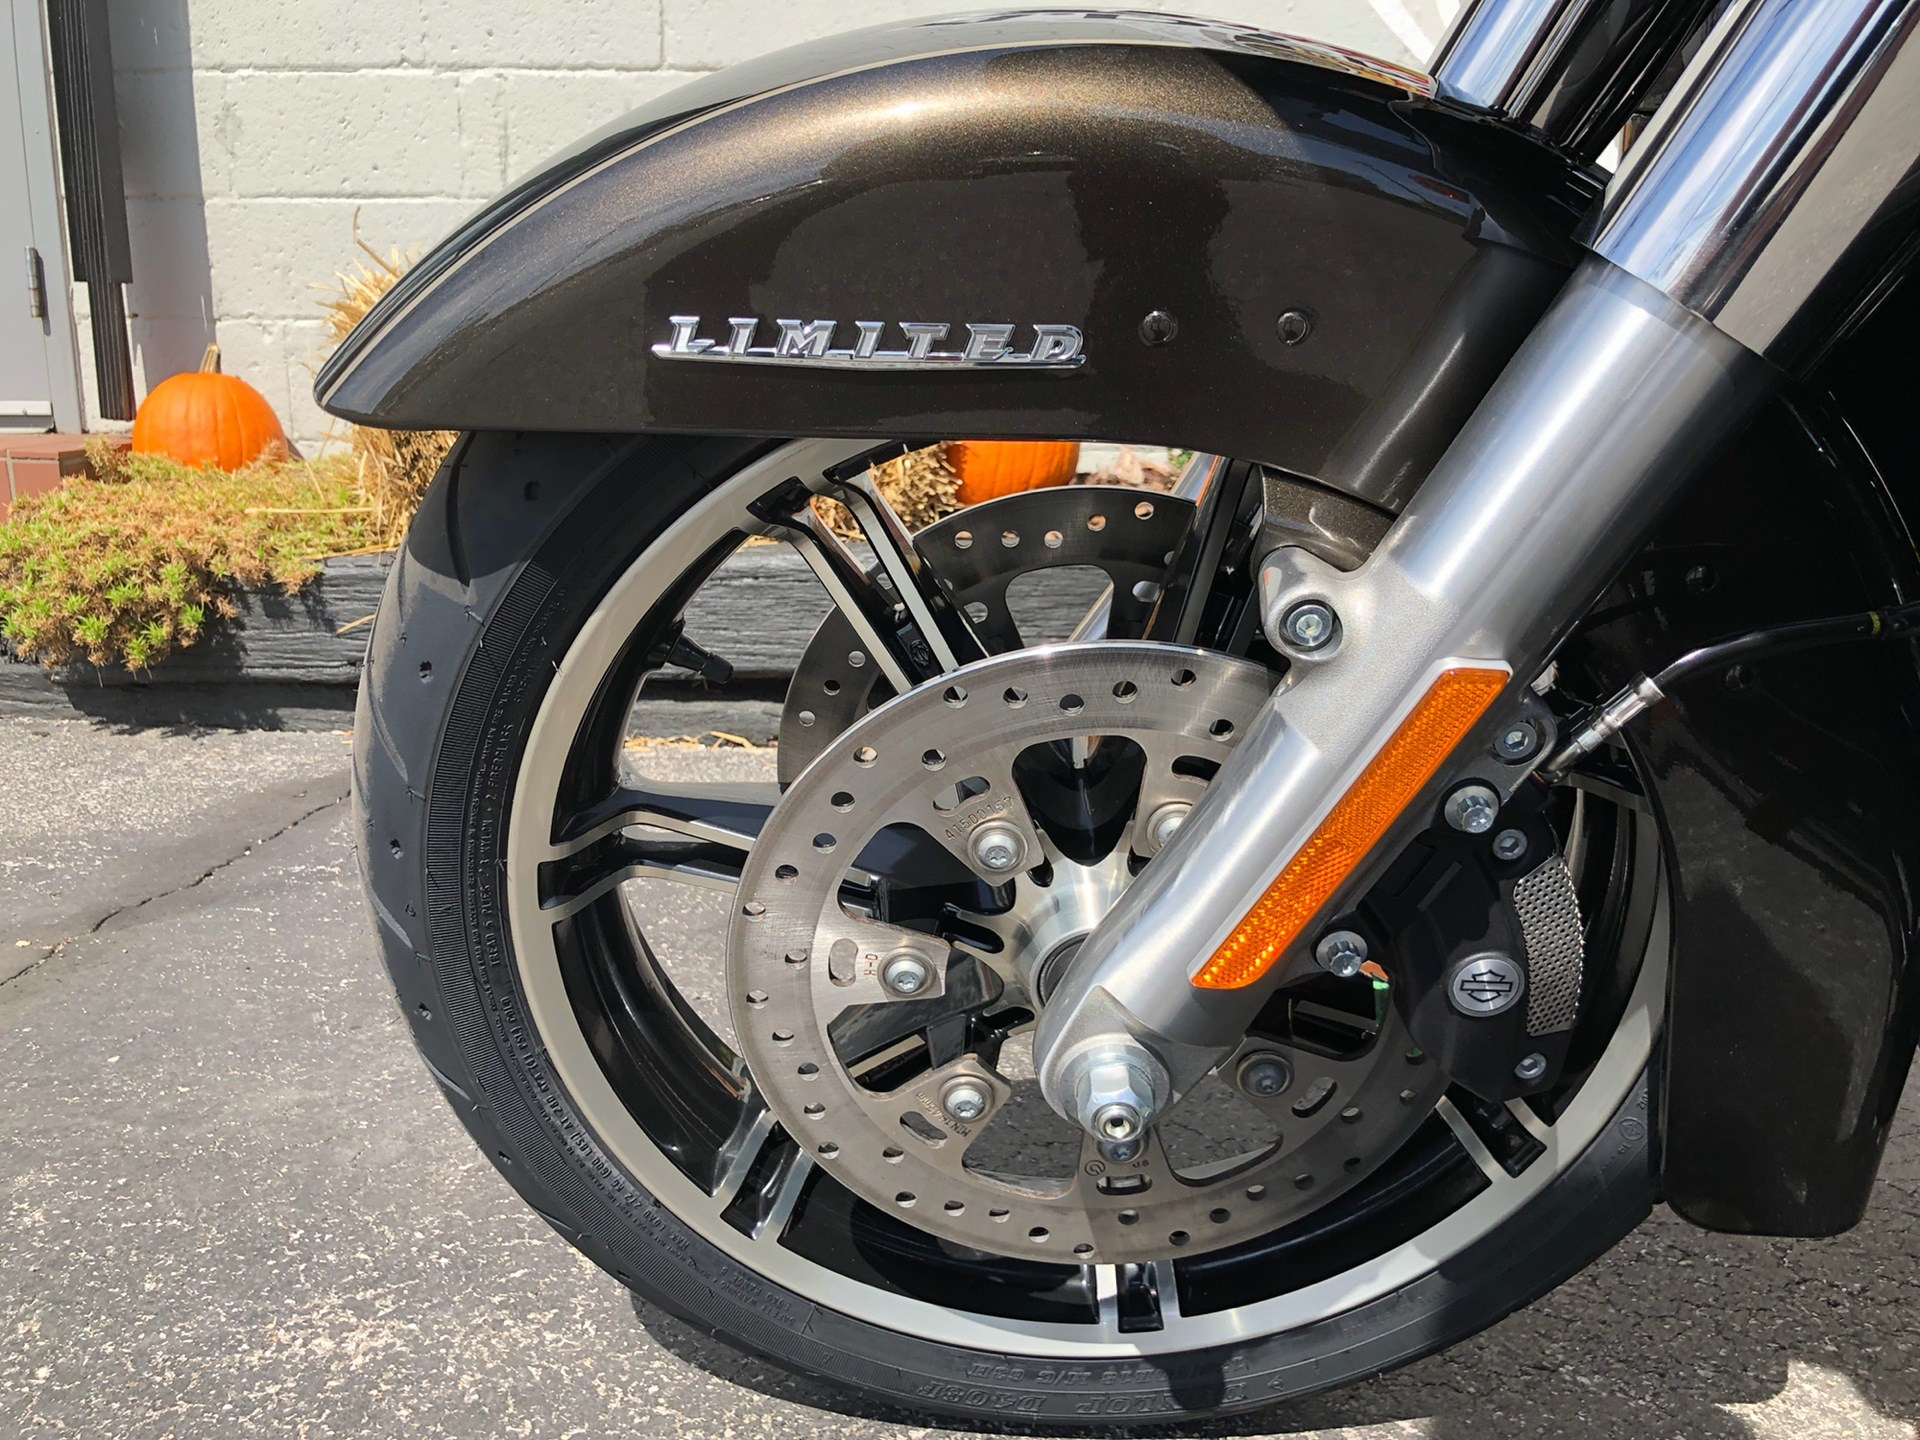 2020 Harley-Davidson FLTRX in Sunbury, Ohio - Photo 11